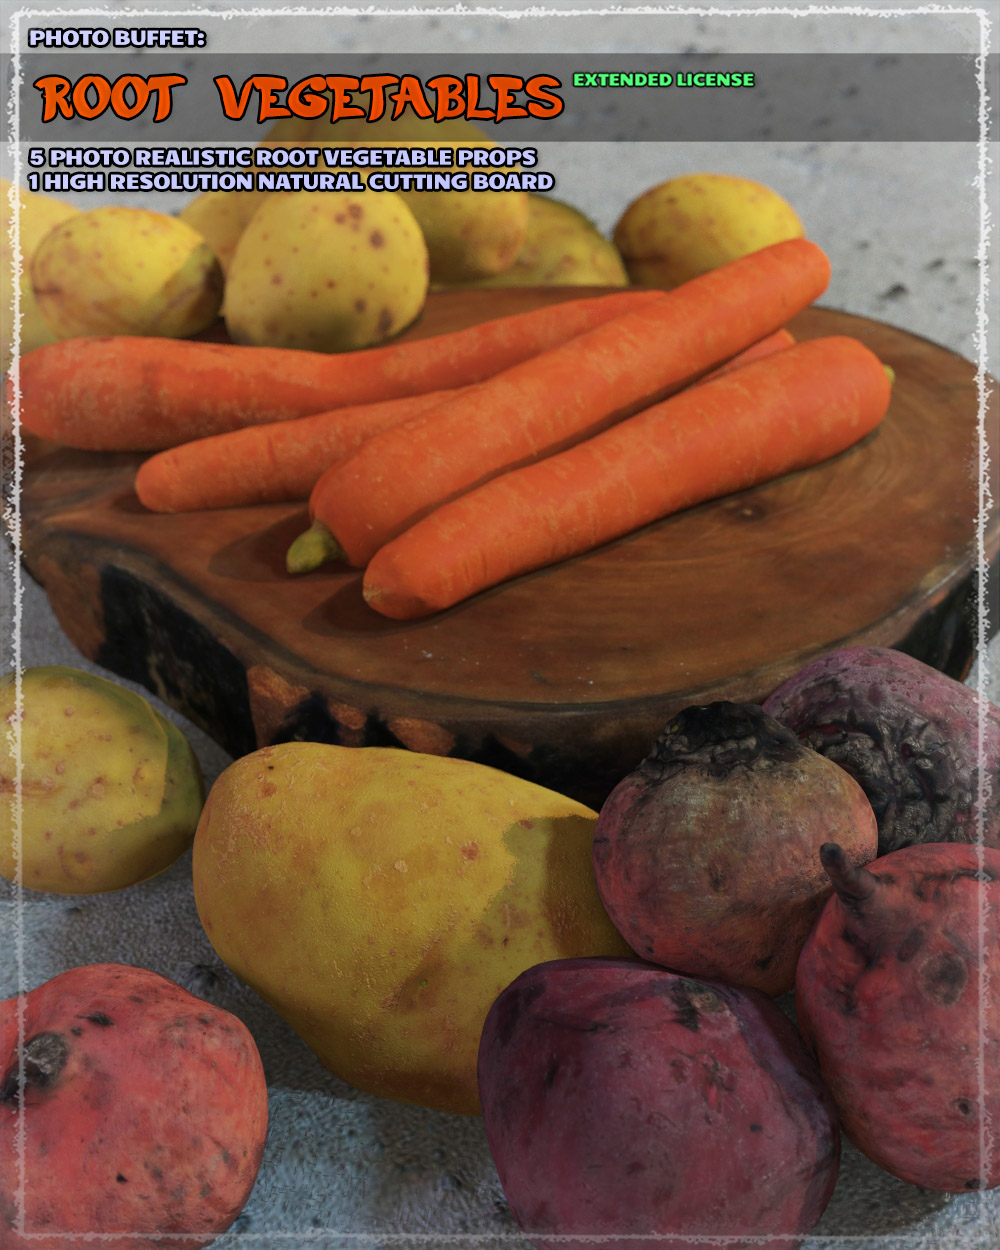 Photo Buffet: Root Vegetables - Extended License